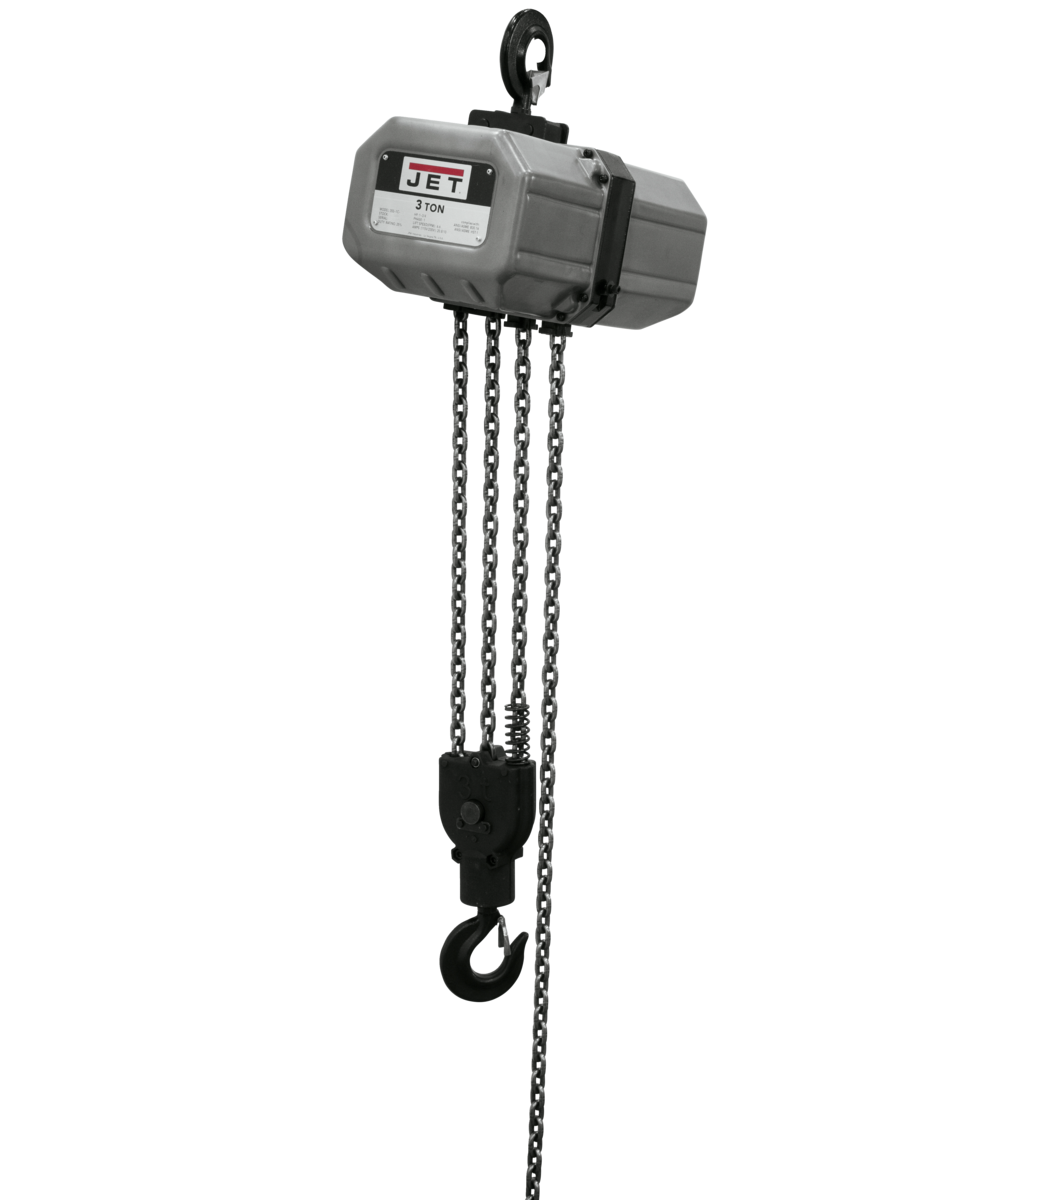 3SS-1C-15, 3-Ton Electric Chain Hoist 1-Phase 15' Lift